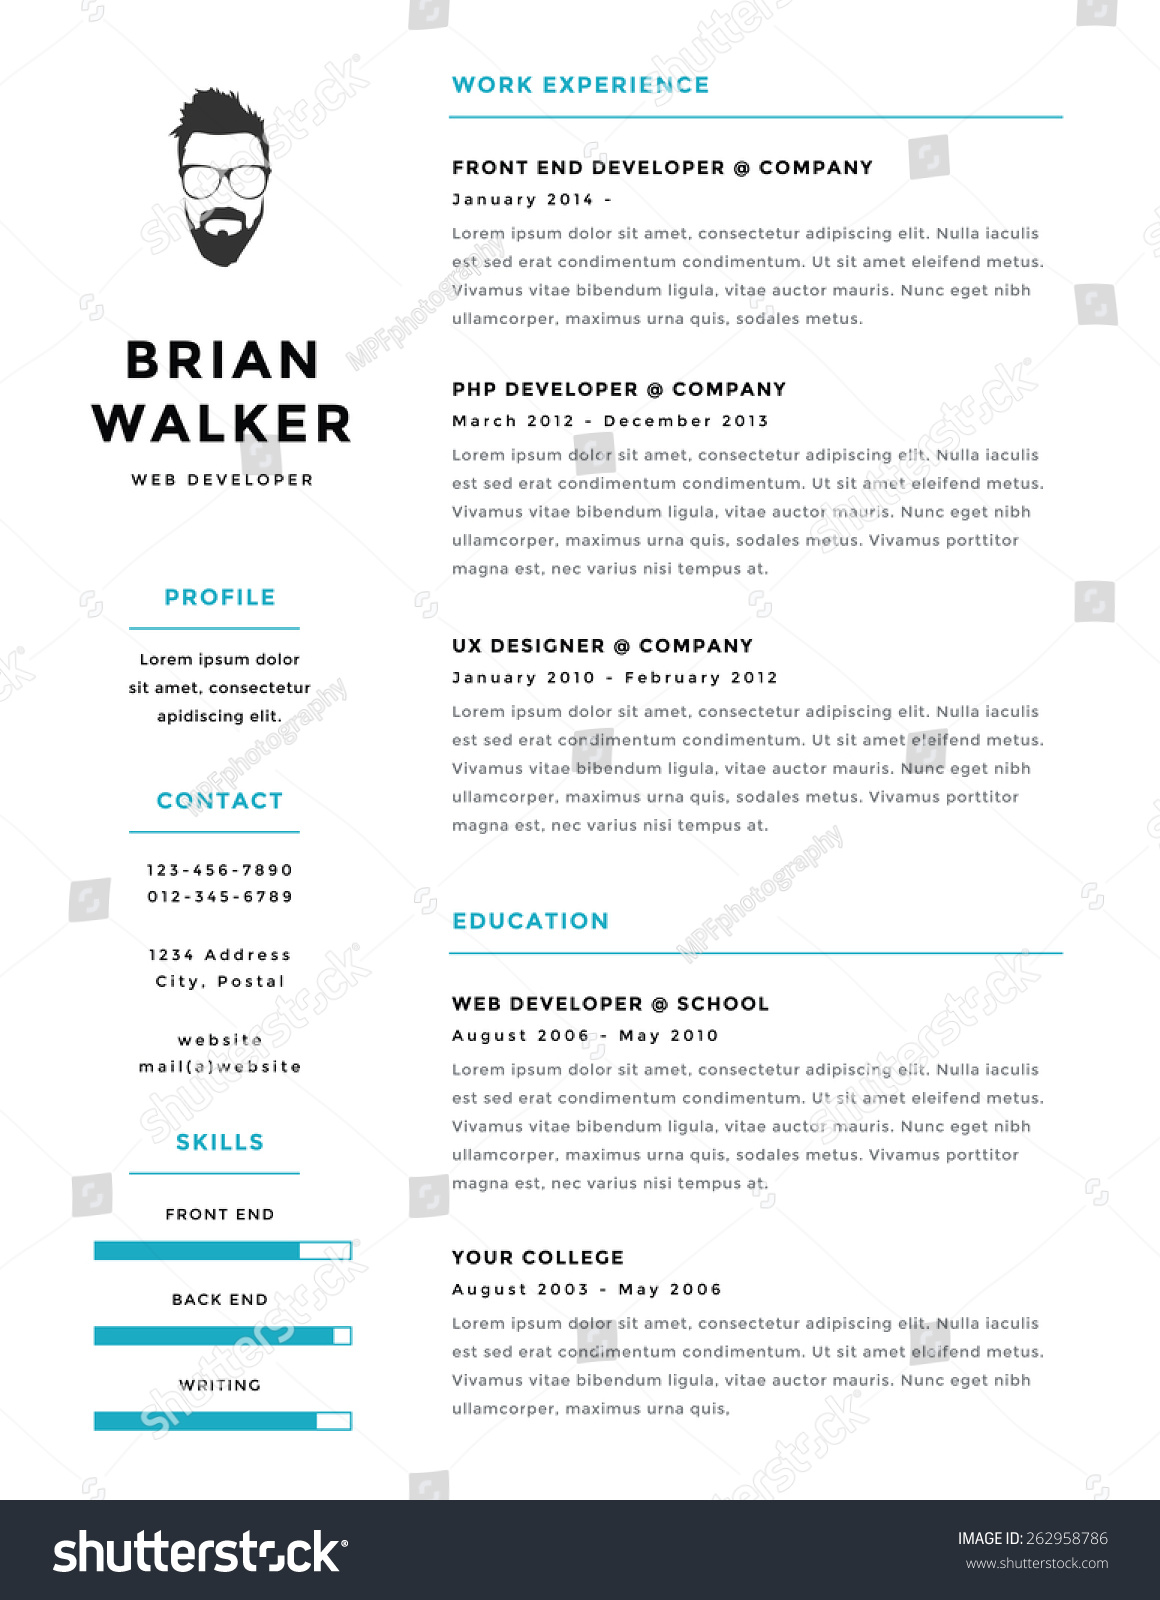 resume layout seek best online resume builder resume layout seek 52 modern resume templates in word o hloom creative mini stic personal vector resume